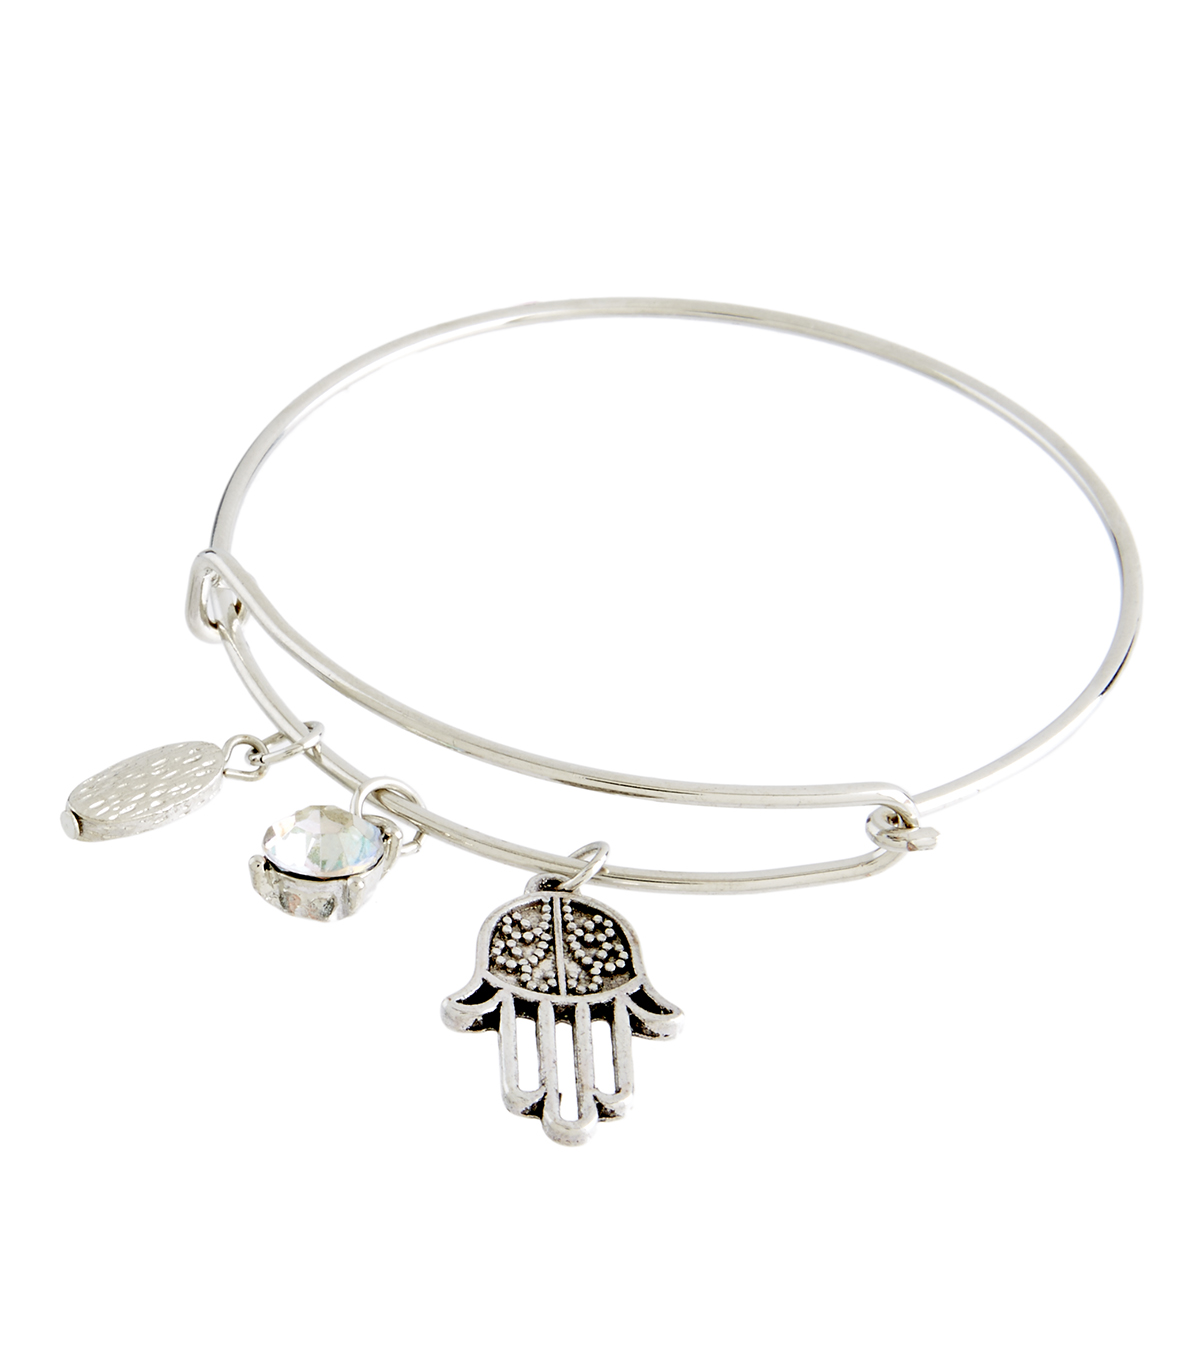 Finished Bracelet Hamsa Hand - Silver